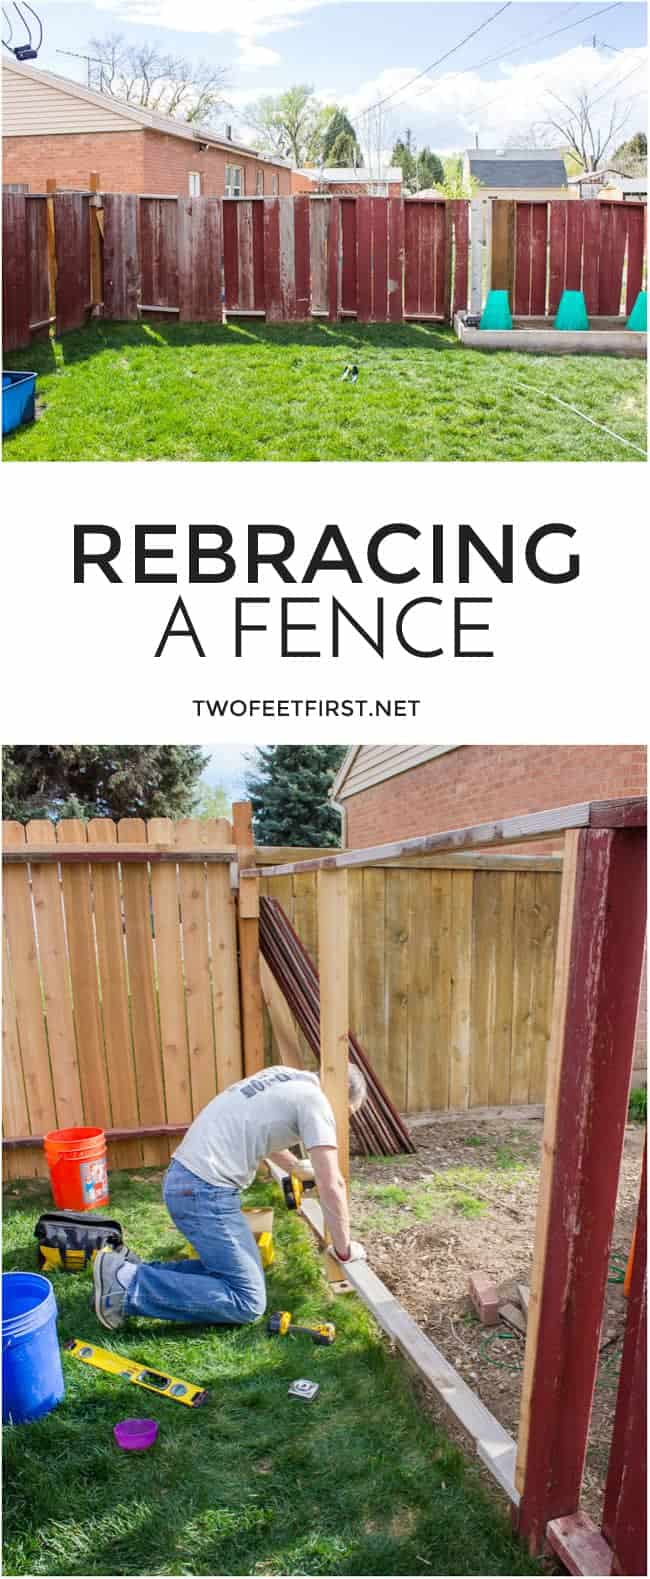 The process to re-brace a fence.